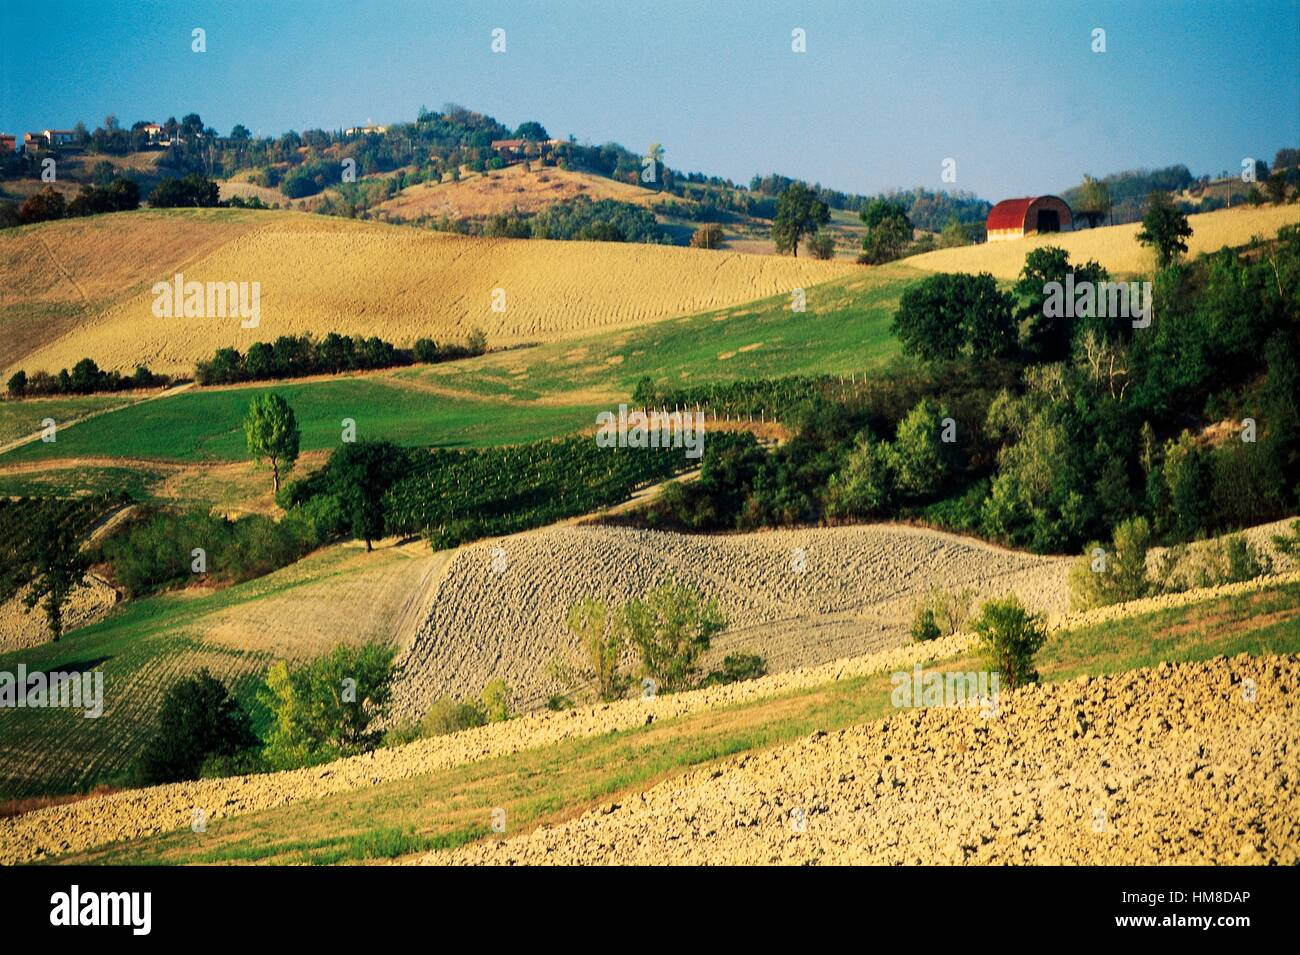 Hilly agriculture landscape between Castel San Pietro Terme and Sassoleone, Emilia-Romagna, Italy. - Stock Image